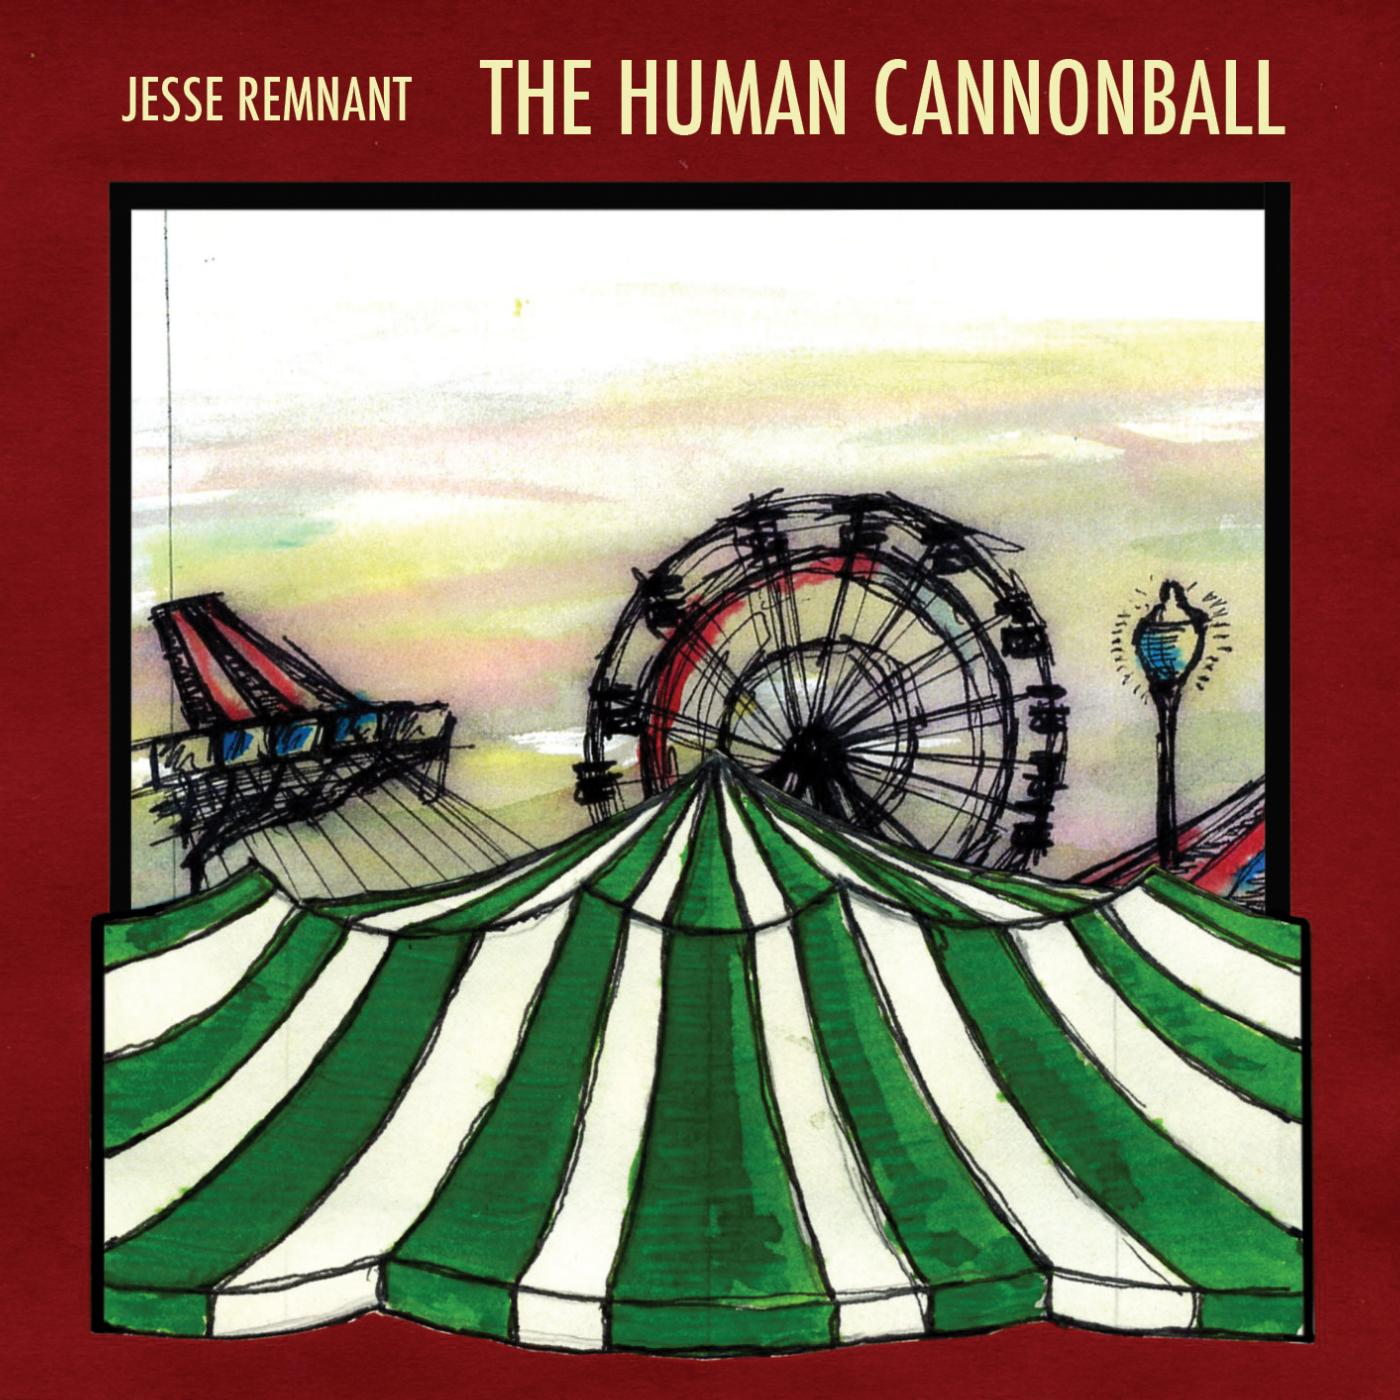 The Human Cannonball 2